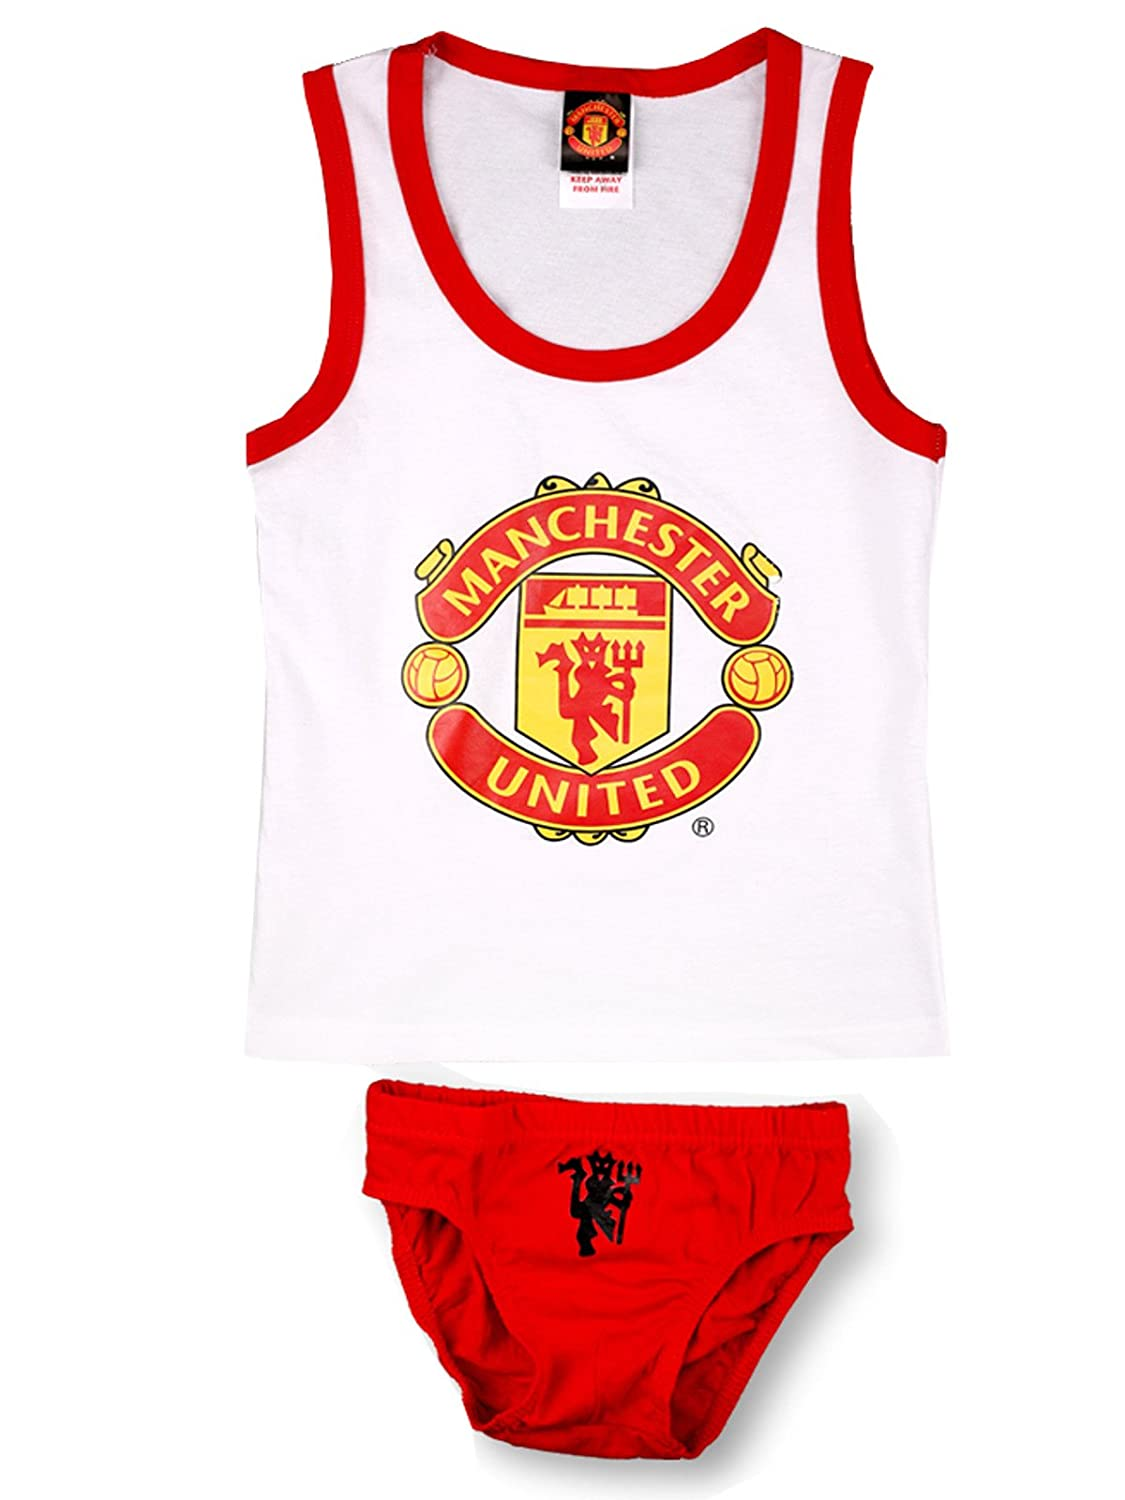 Boys Official MUFC Manchester United Vest and Brief Set 7 to 12 Years